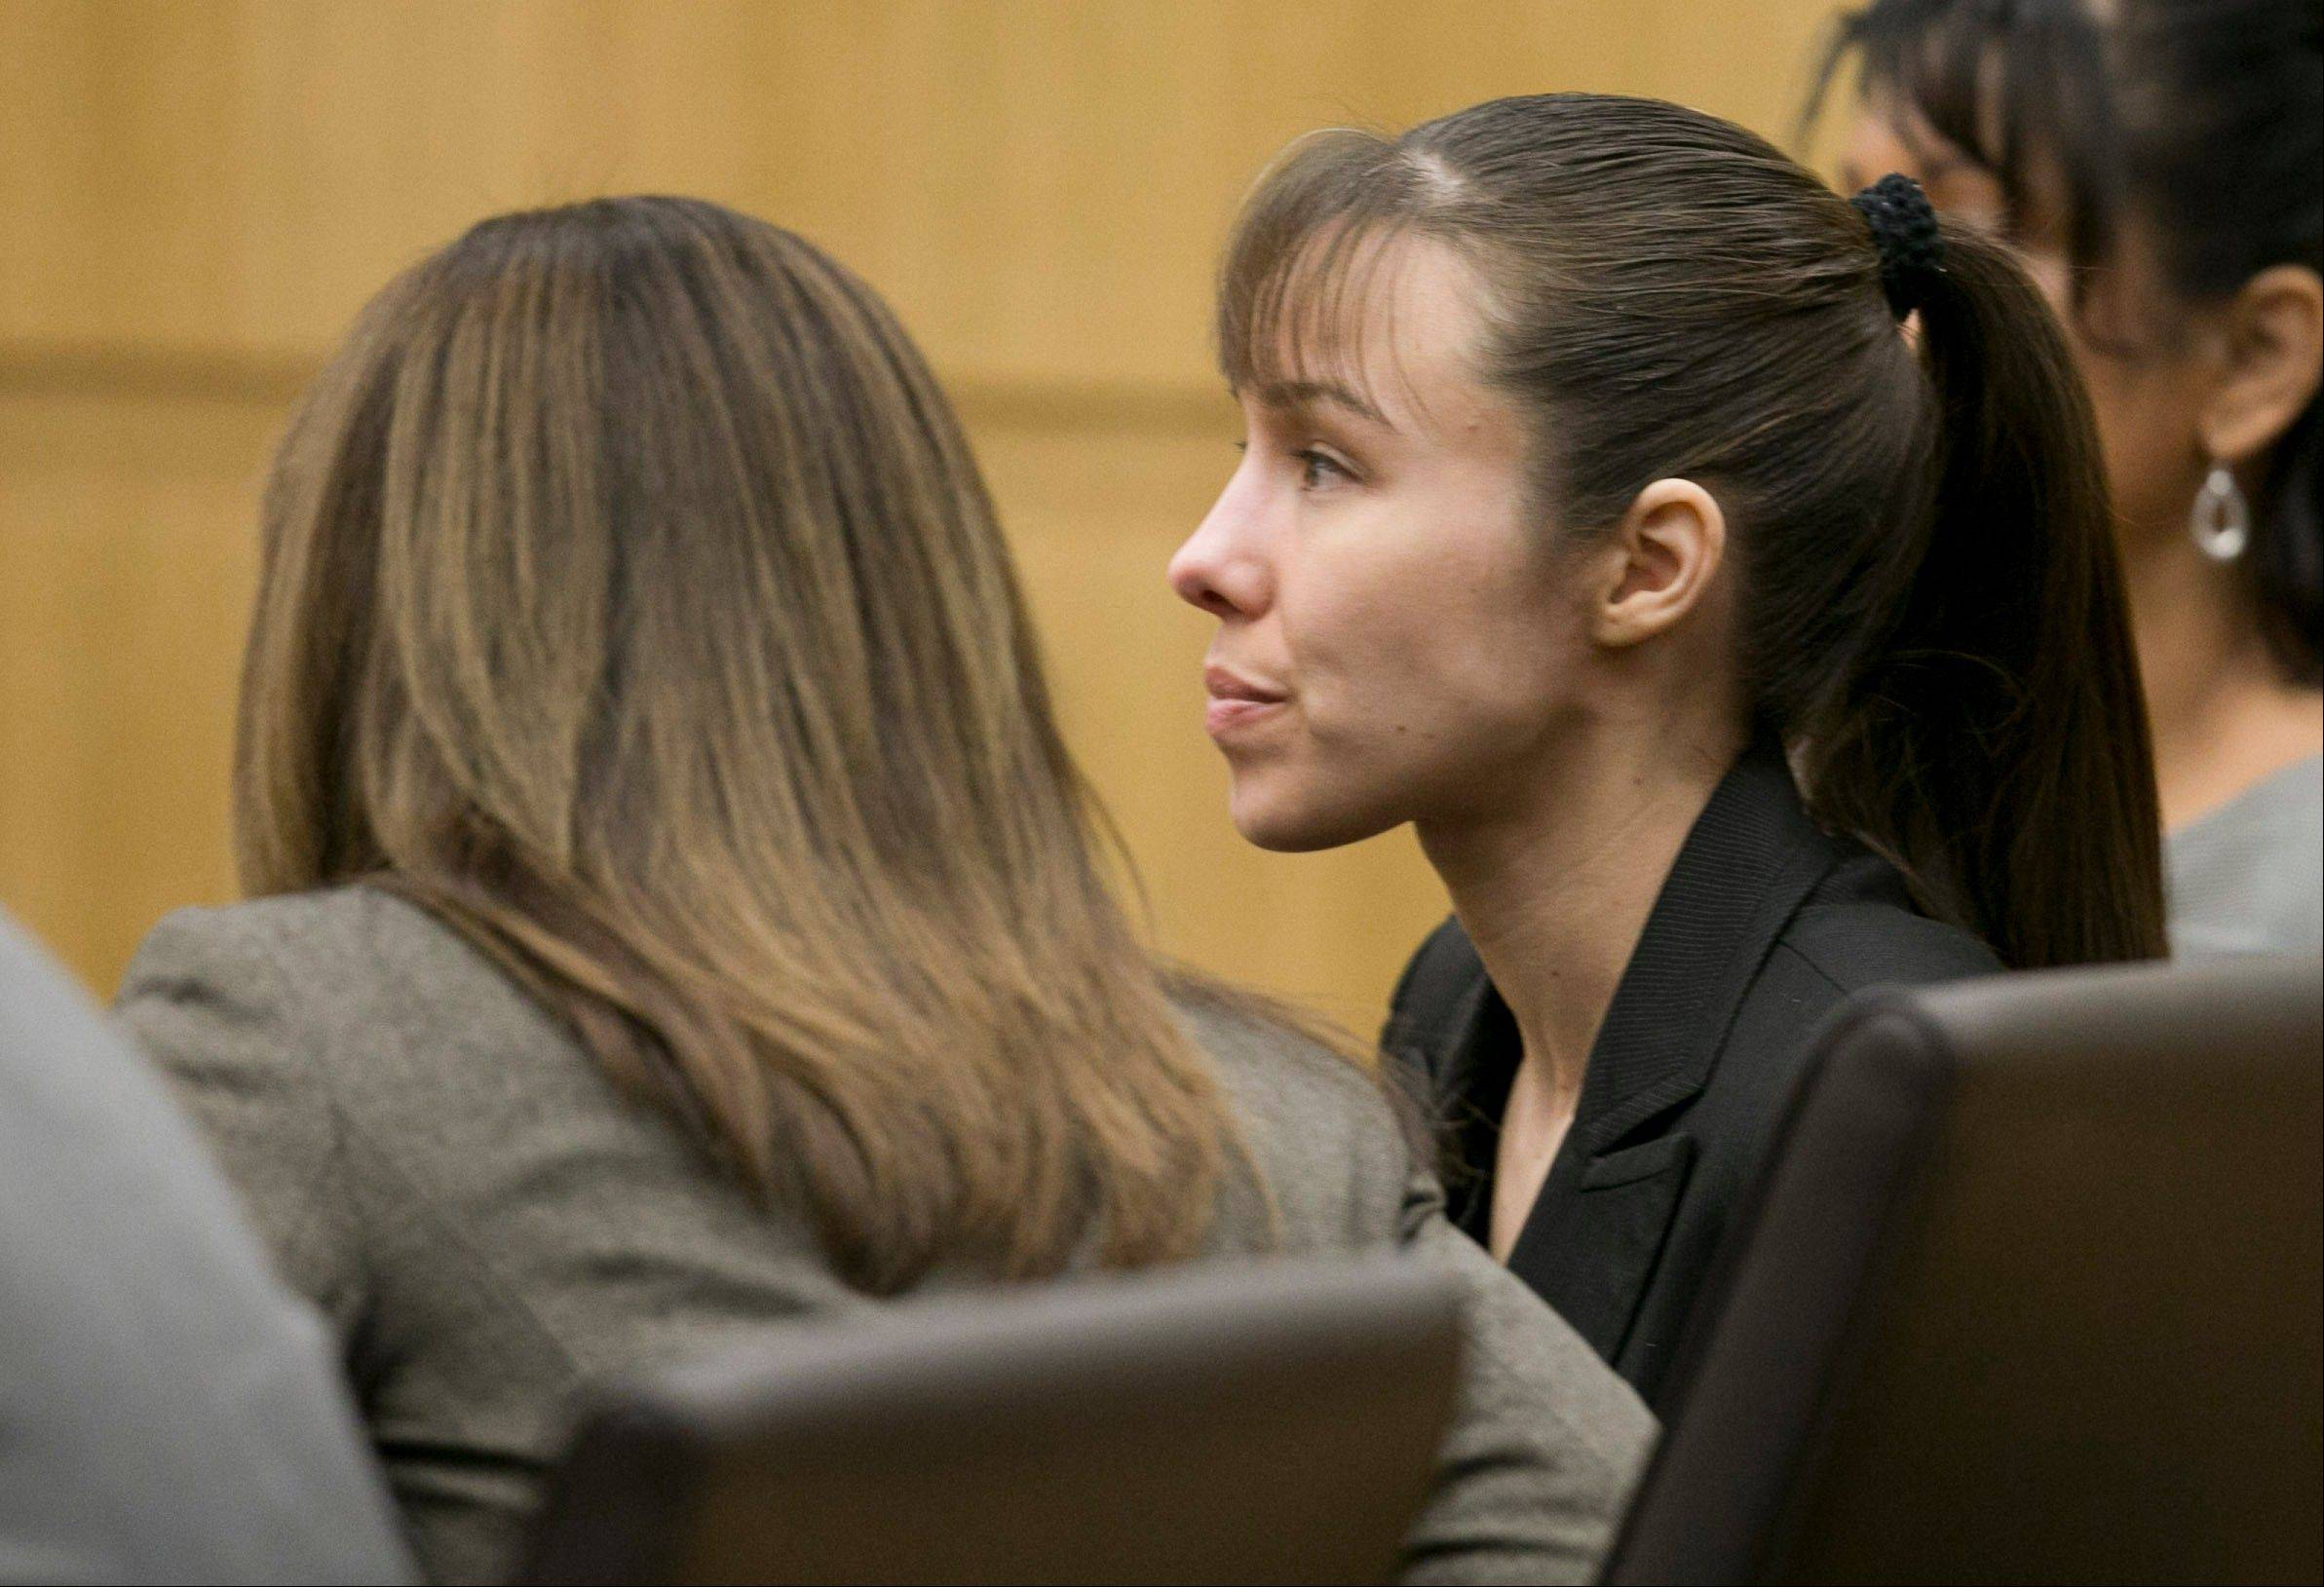 Jodi Arias listens as the verdict for sentencing is read for her first degree murder conviction at Maricopa County Superior Court in Phoenix, Ariz., on Thursday, May 23, 2013. The jury in Jodi Arias' trial was dismissed Thursday after failing to reach a unanimous decision on whether the woman they convicted of murdering her one-time boyfriend should be sentenced to life or death in a case that has captured headlines worldwide with its sex, lies, violence.